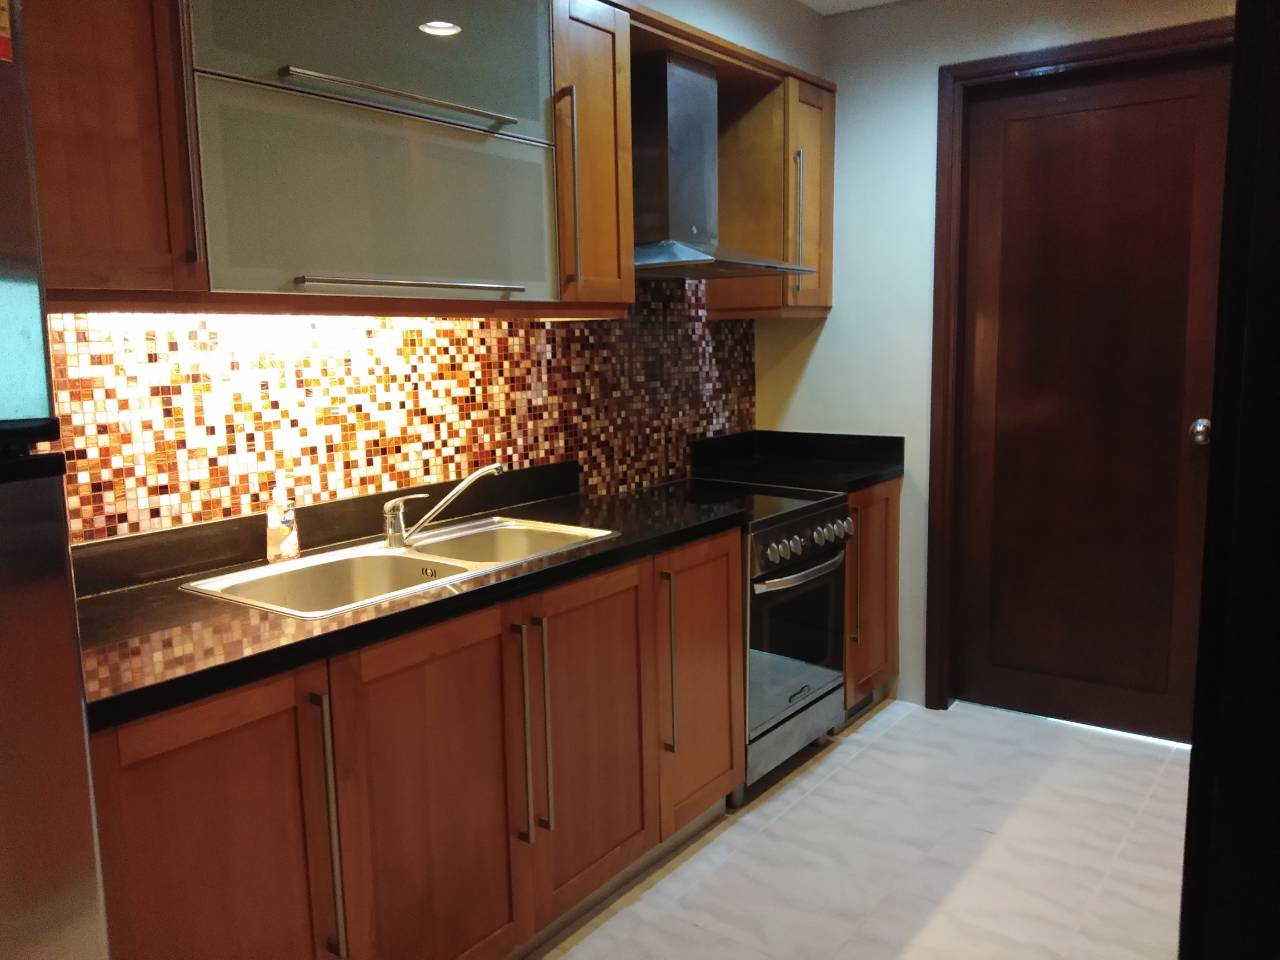 2 Bedrooms Condo For Rent, The Residences At Greenbelt Kitchen View 1